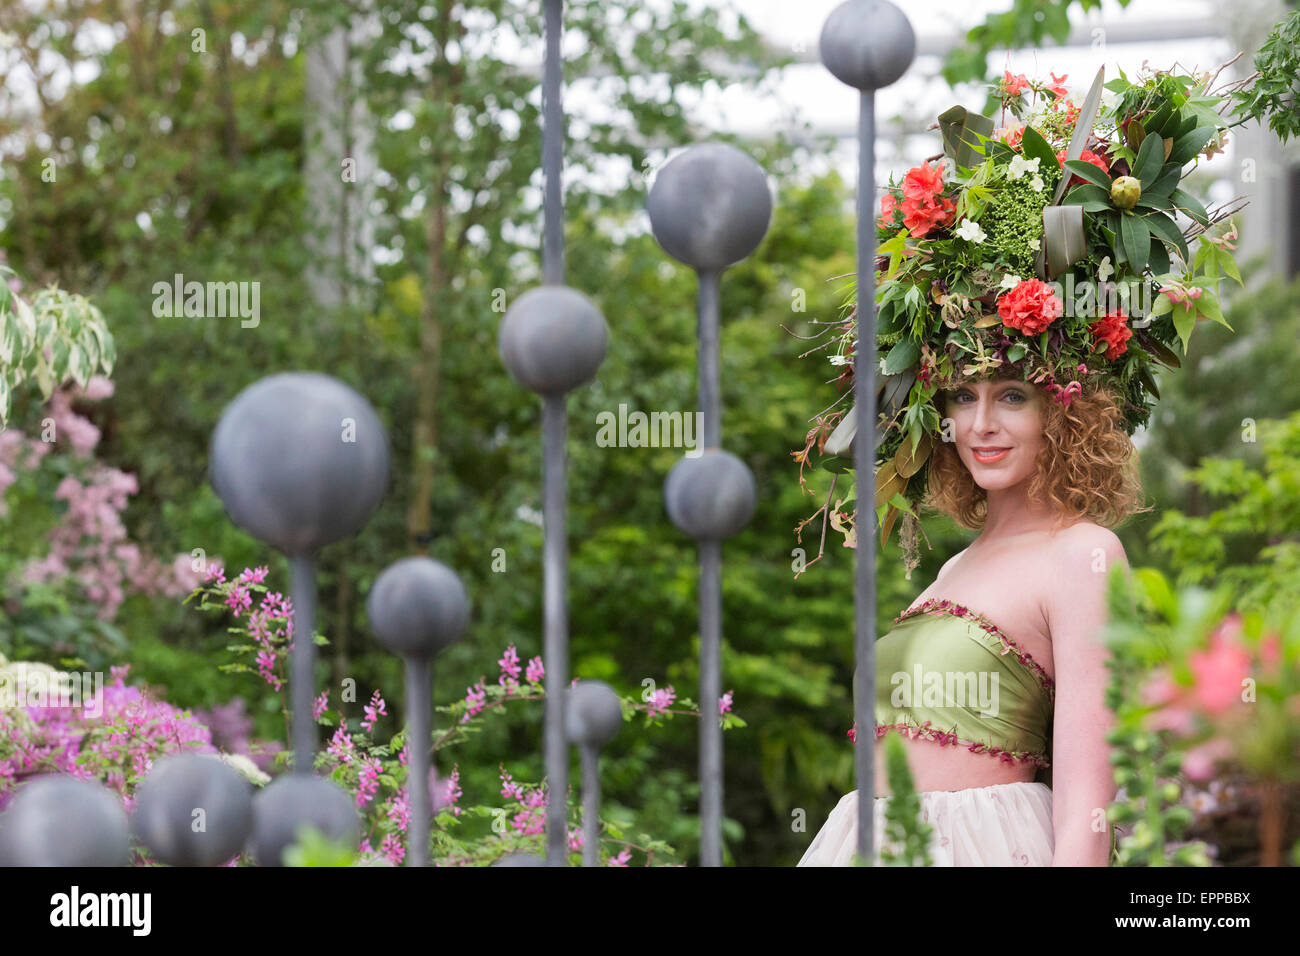 RHS Chelsea Flower Show, model with a large floral headdress at the Hillier Nurseries tradestand Stock Photo